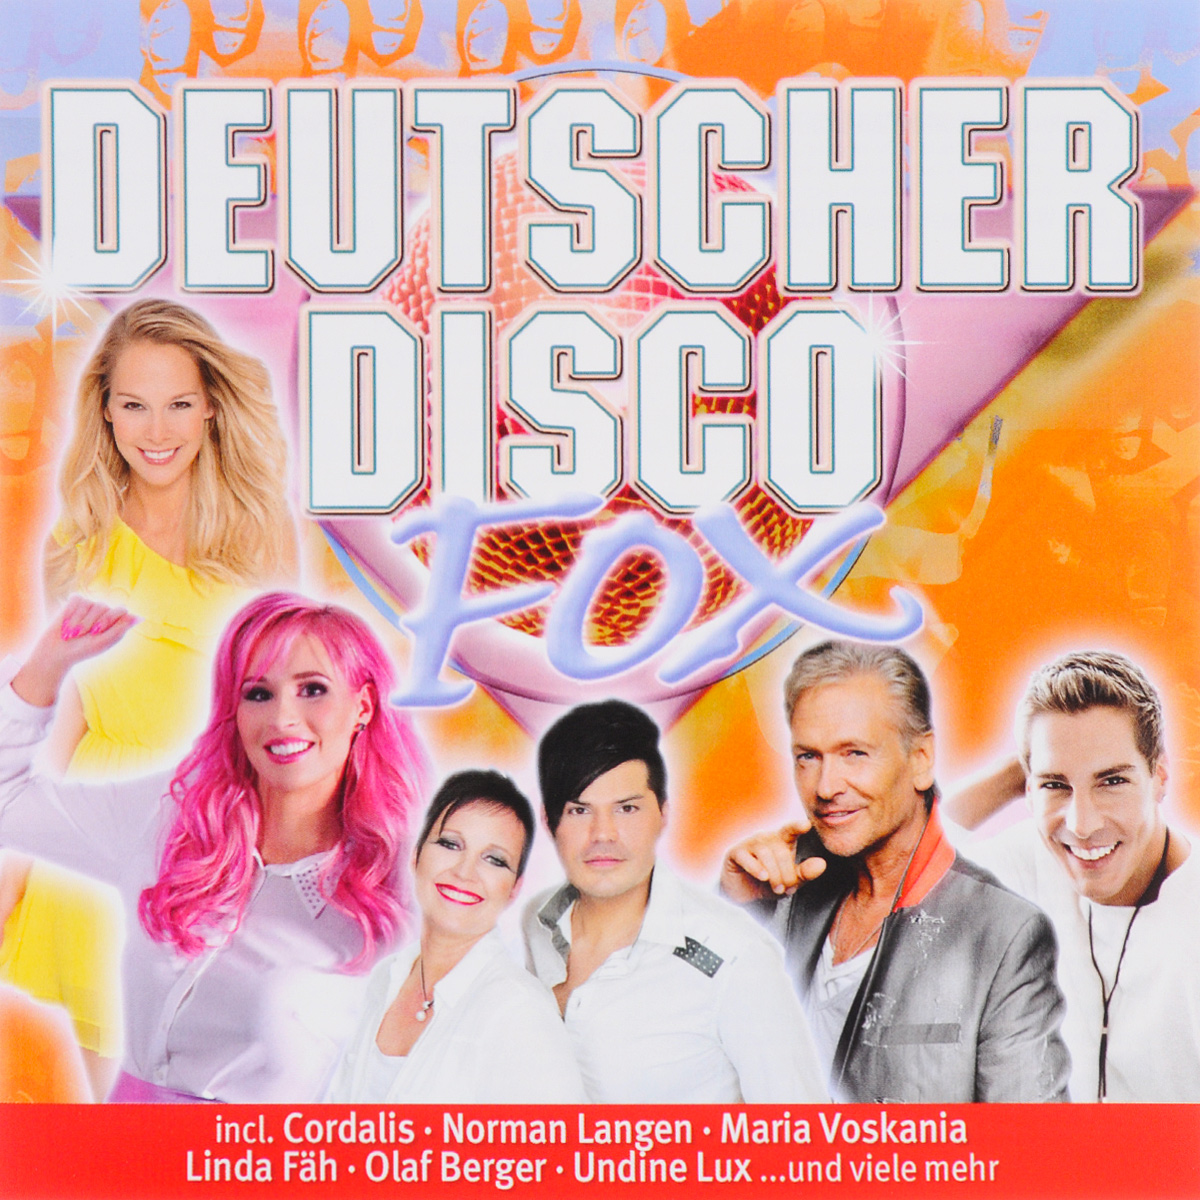 Norman Langen,Undine Lux,Denny Fabian,Nico Gemba,Jorg Bausch,Annemarie Eilfeld,Linda Fah,Cordalis,Anni Perka,G.G. Anderson Deutscher Disco Fox 2017 (2 CD) annemarie borlind тени для век светло розовый annemarie borlind makeup light rose 48 150948 2 г